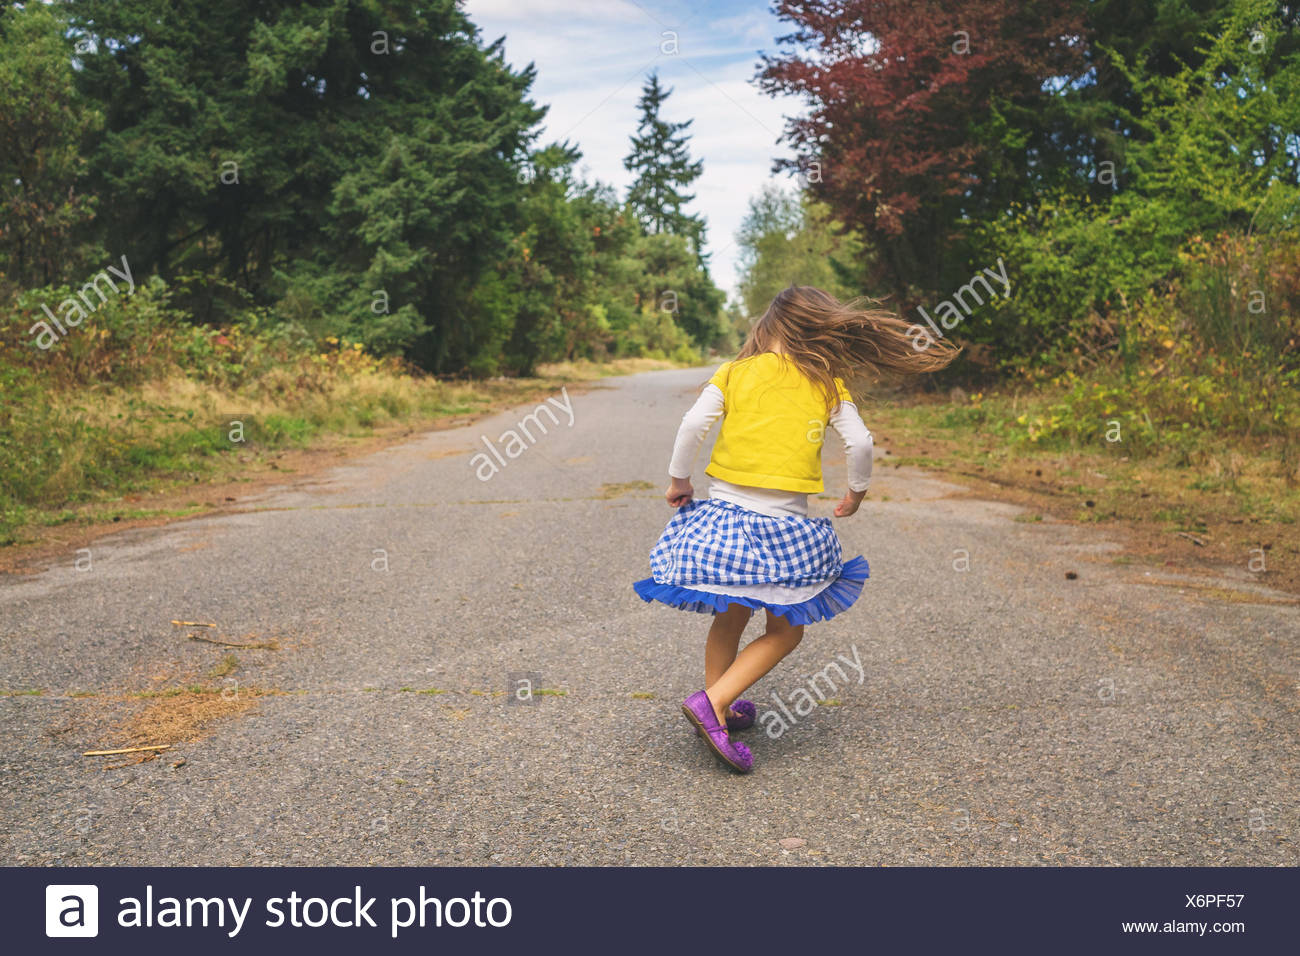 Girl spinning around on a road - Stock Image